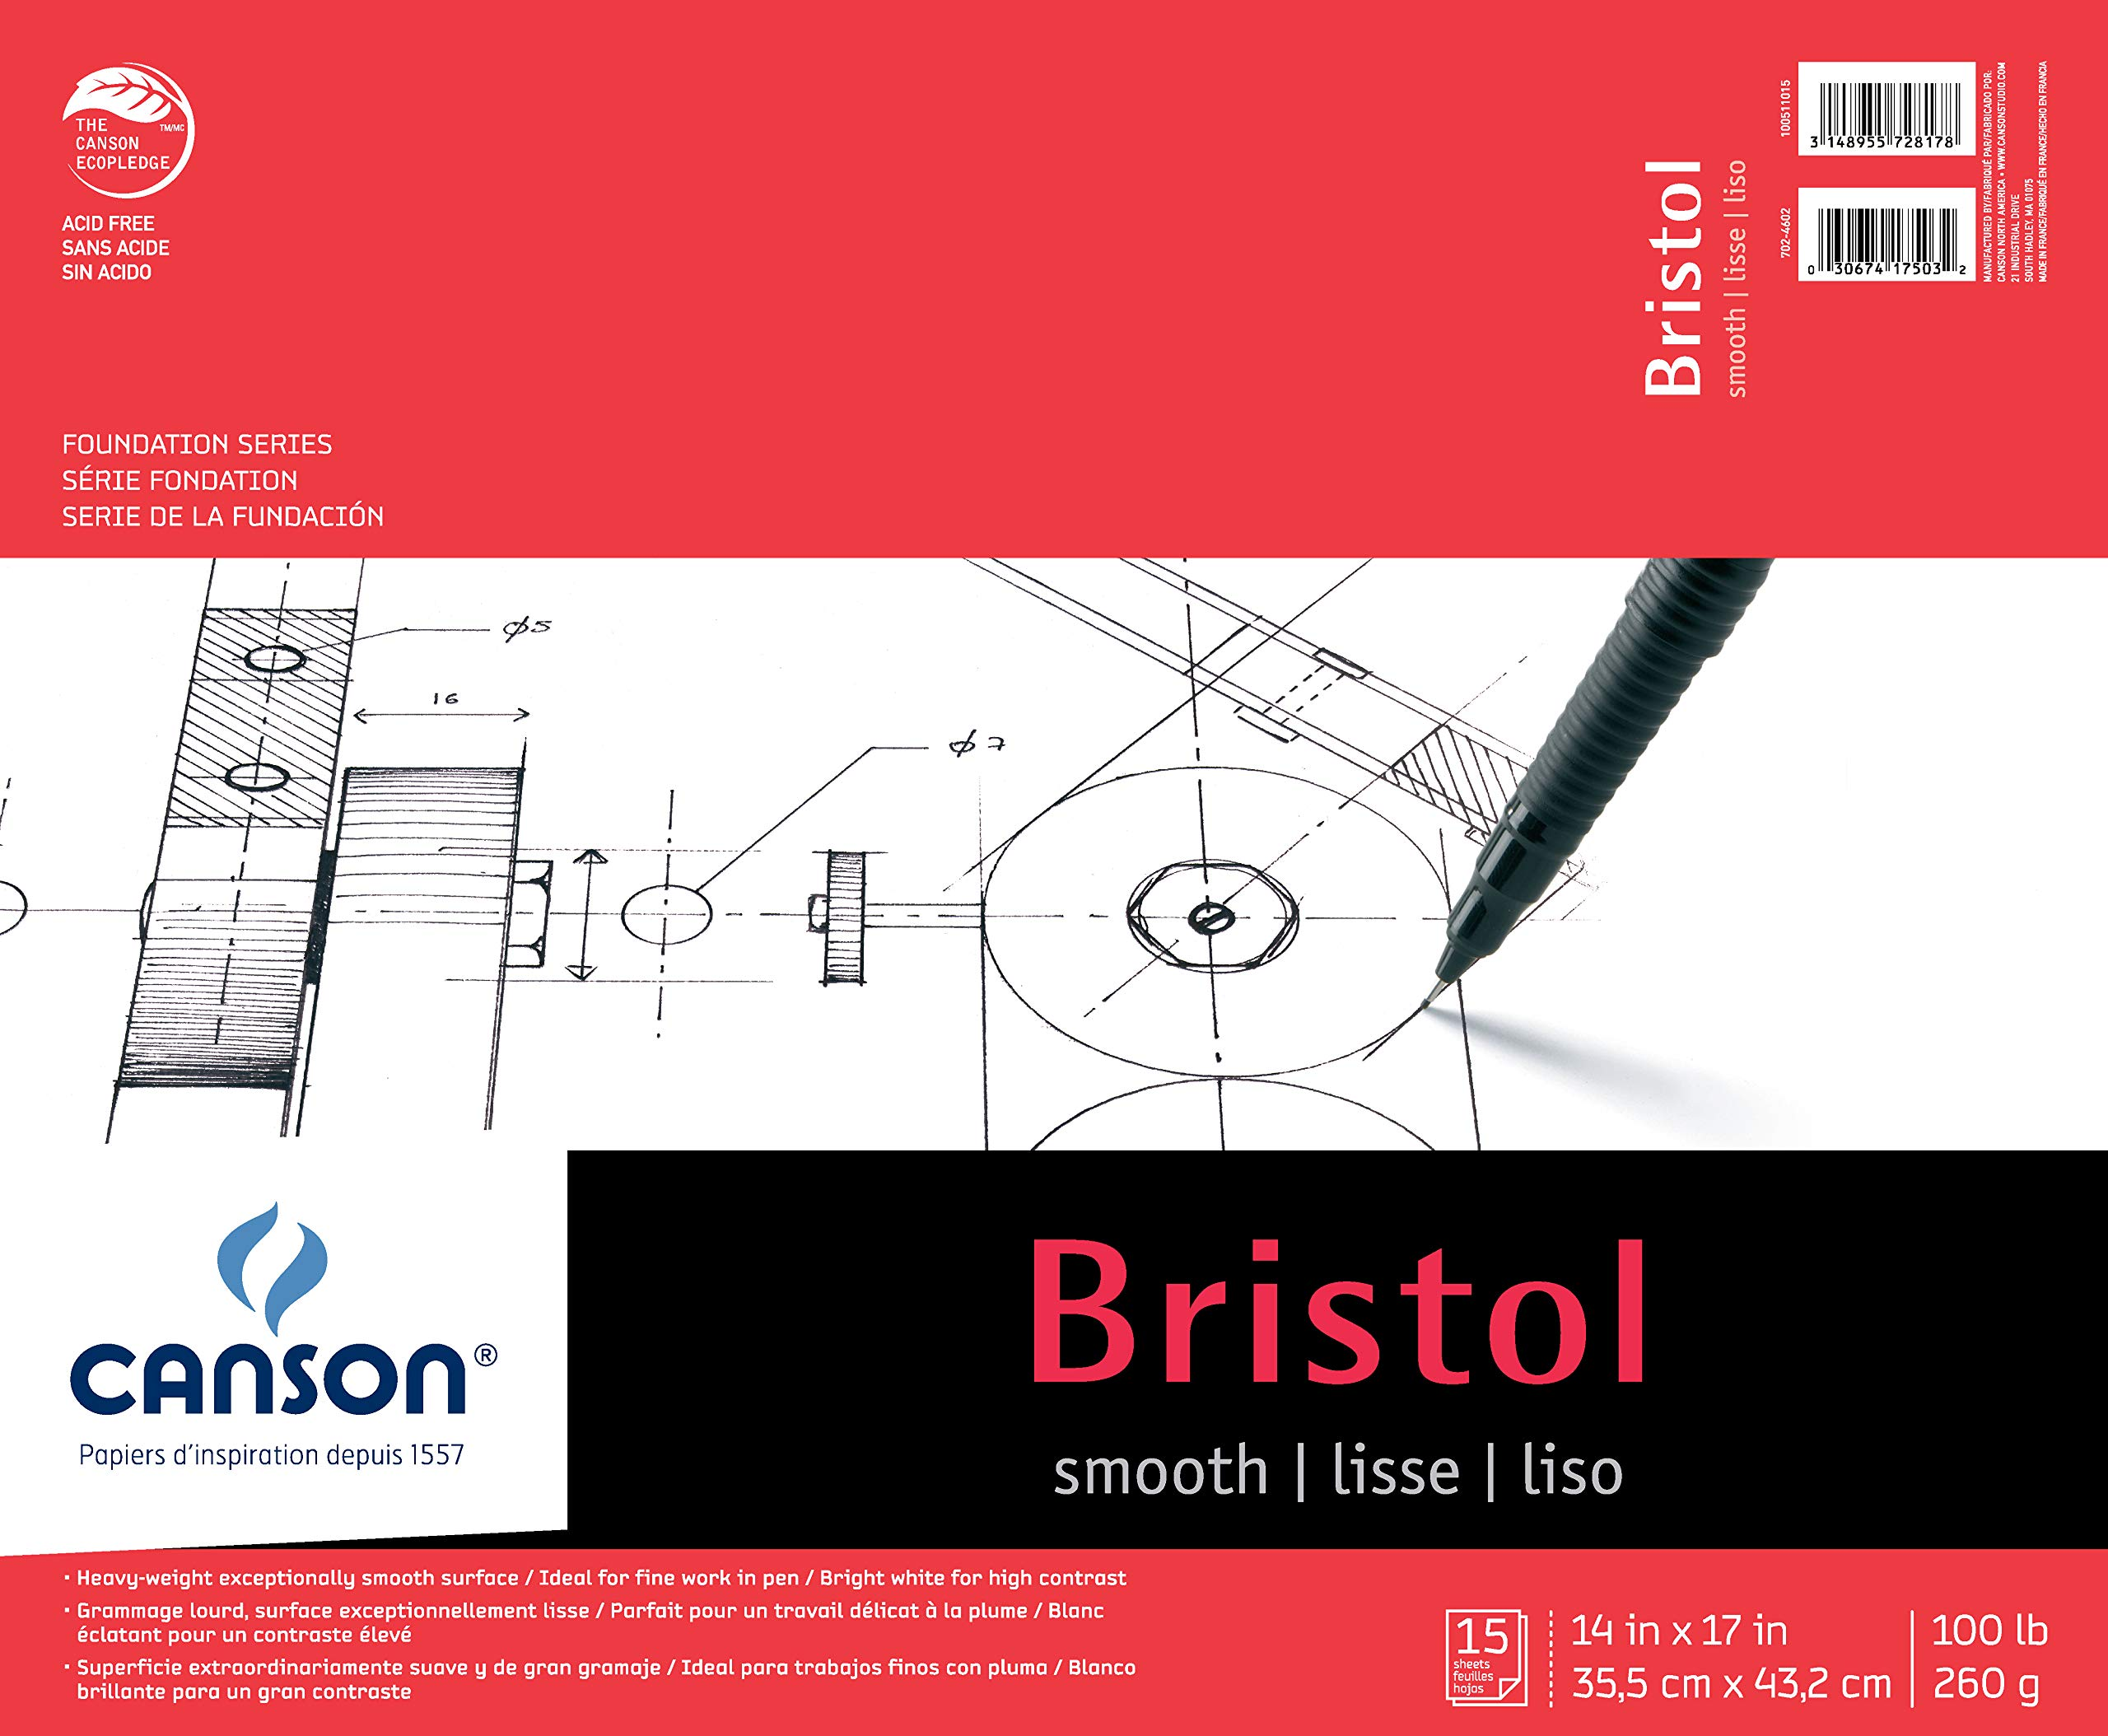 Canson Foundation Series Bristol Paper Pad, Heavyweight Paper for Pen, Smooth Finish, Fold Over, 100 Pound, 14 x 17 Inch, Bright White, 15 Sheets by Canson